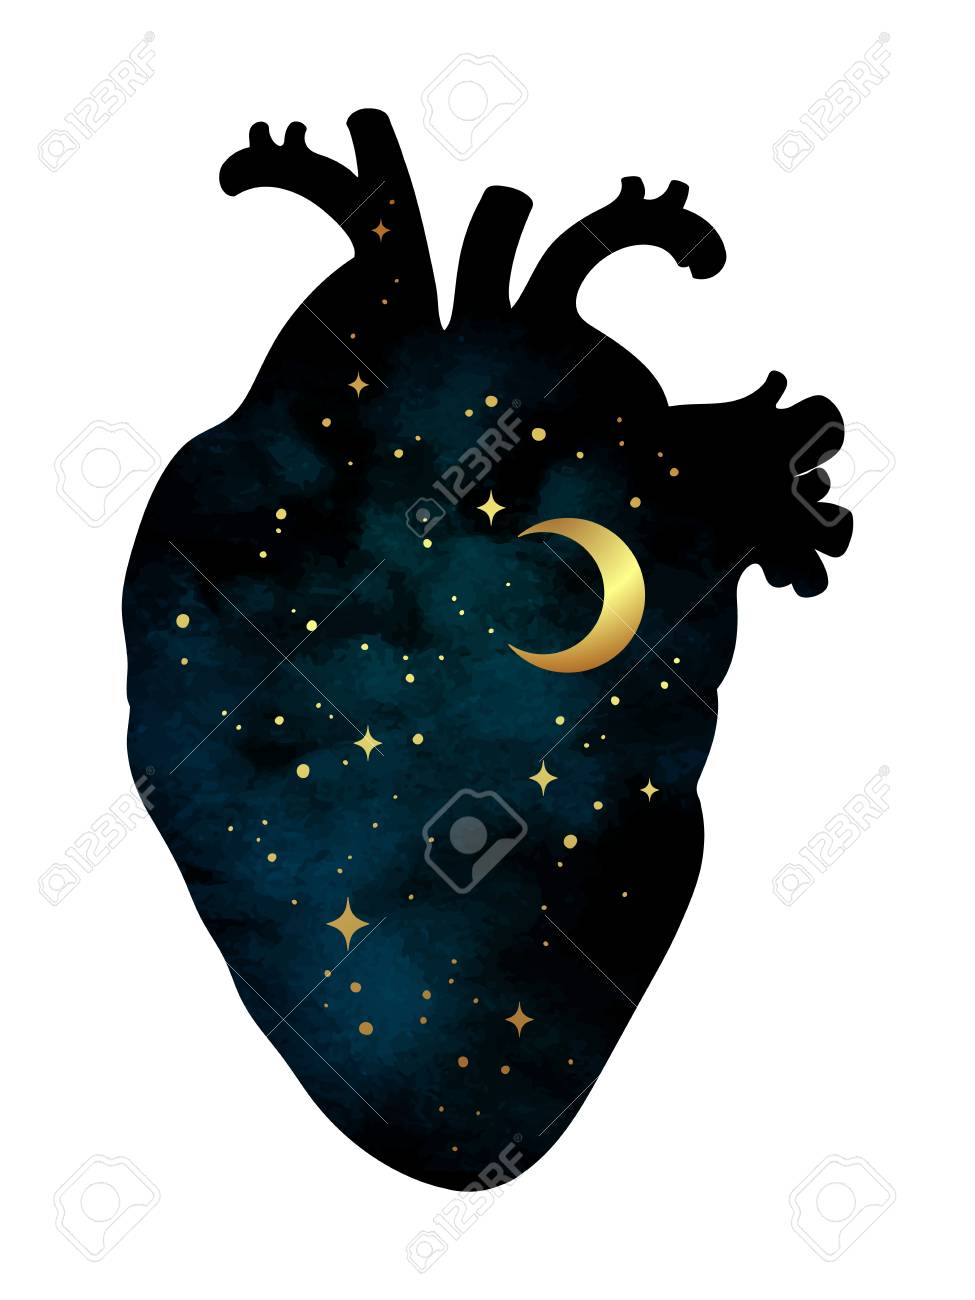 Silhouette of human heart with universe inside. Crescent moon and stars. Sticker, print or tattoo design vector illustration isolated - 88614881